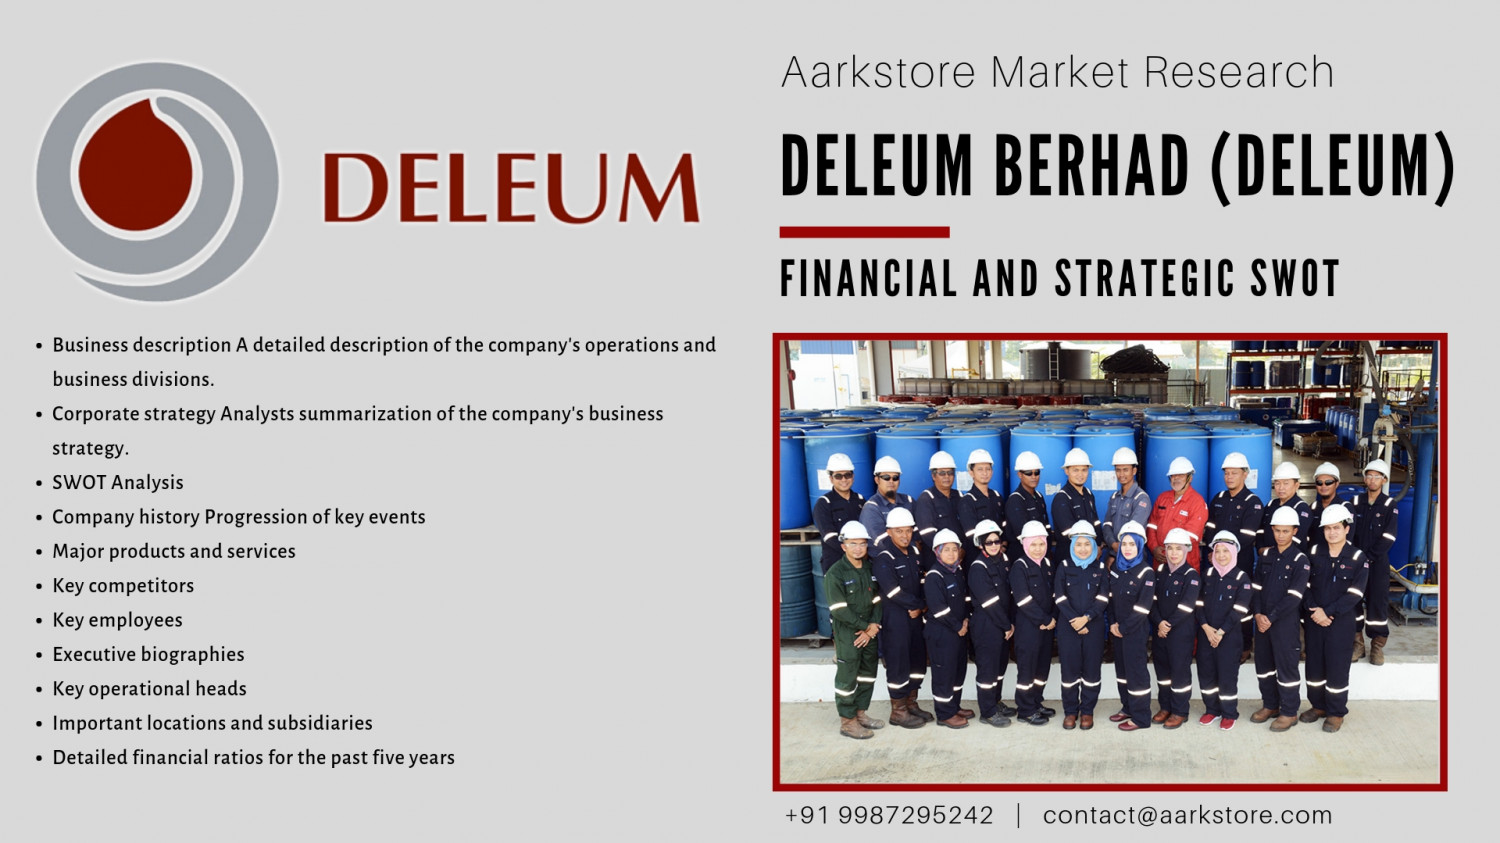 A distinct SWOT portrait of Deleum Berhad. Infographic